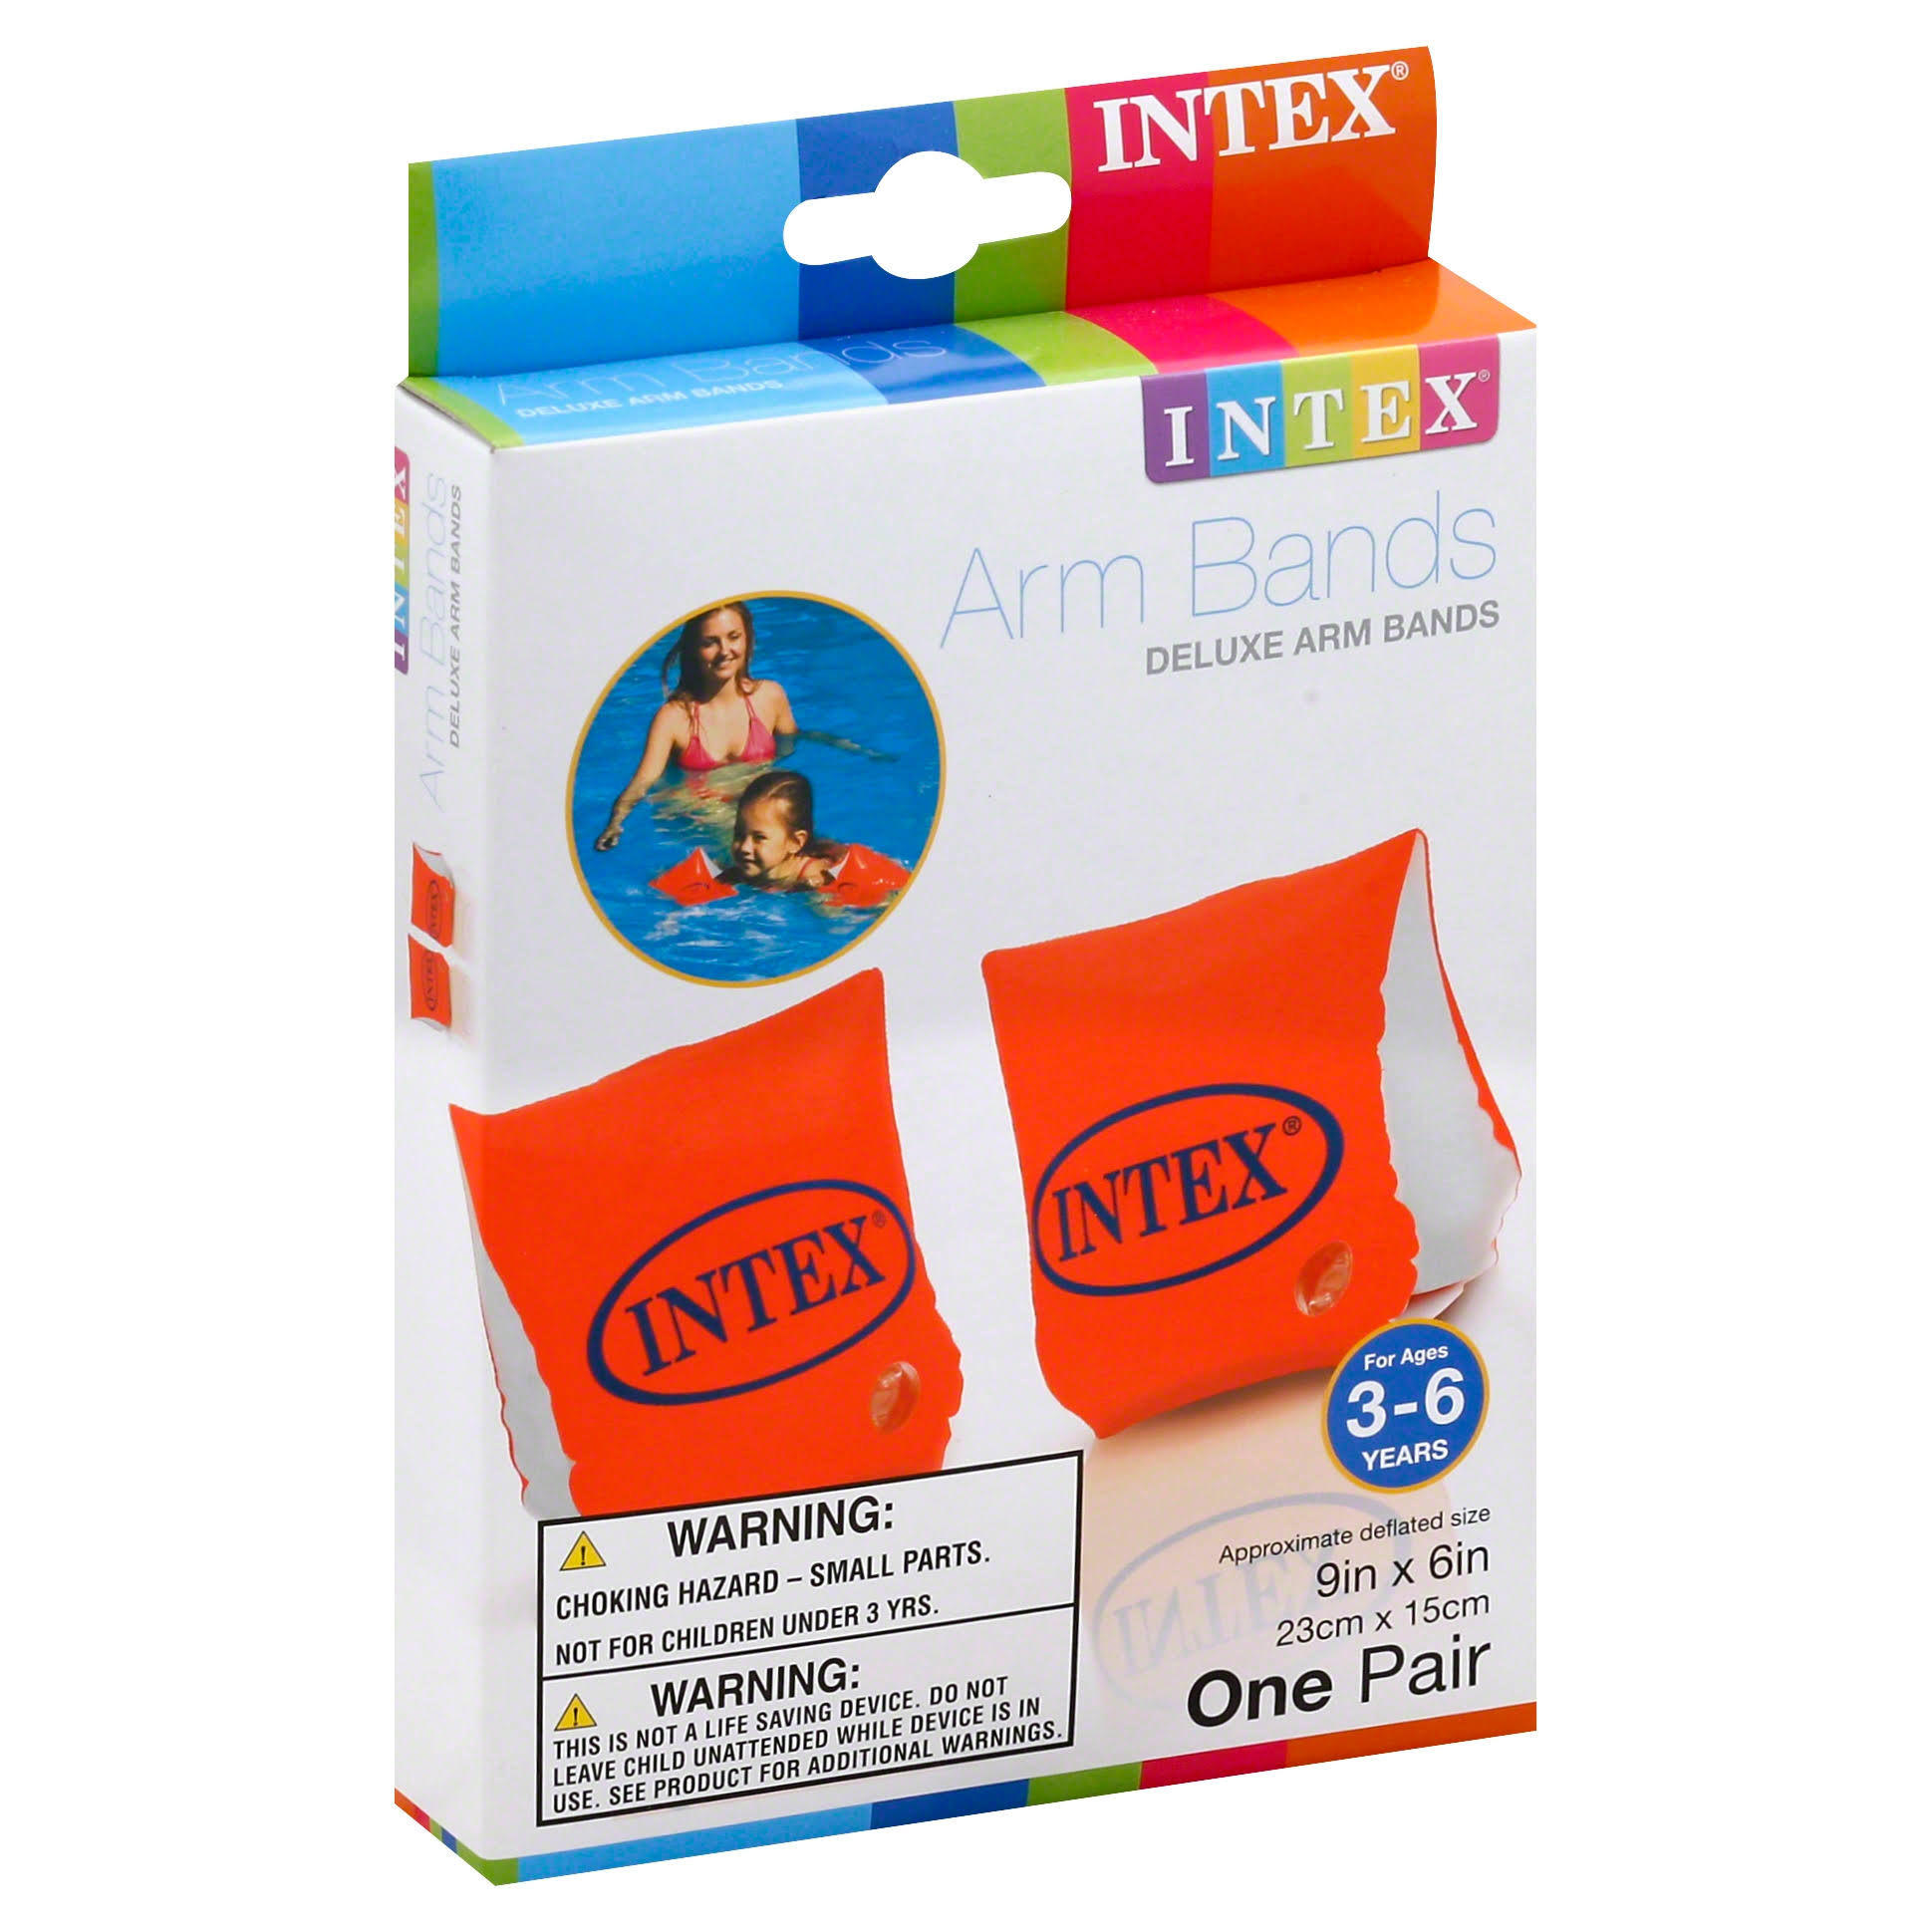 Intex Arm Bands, Deluxe